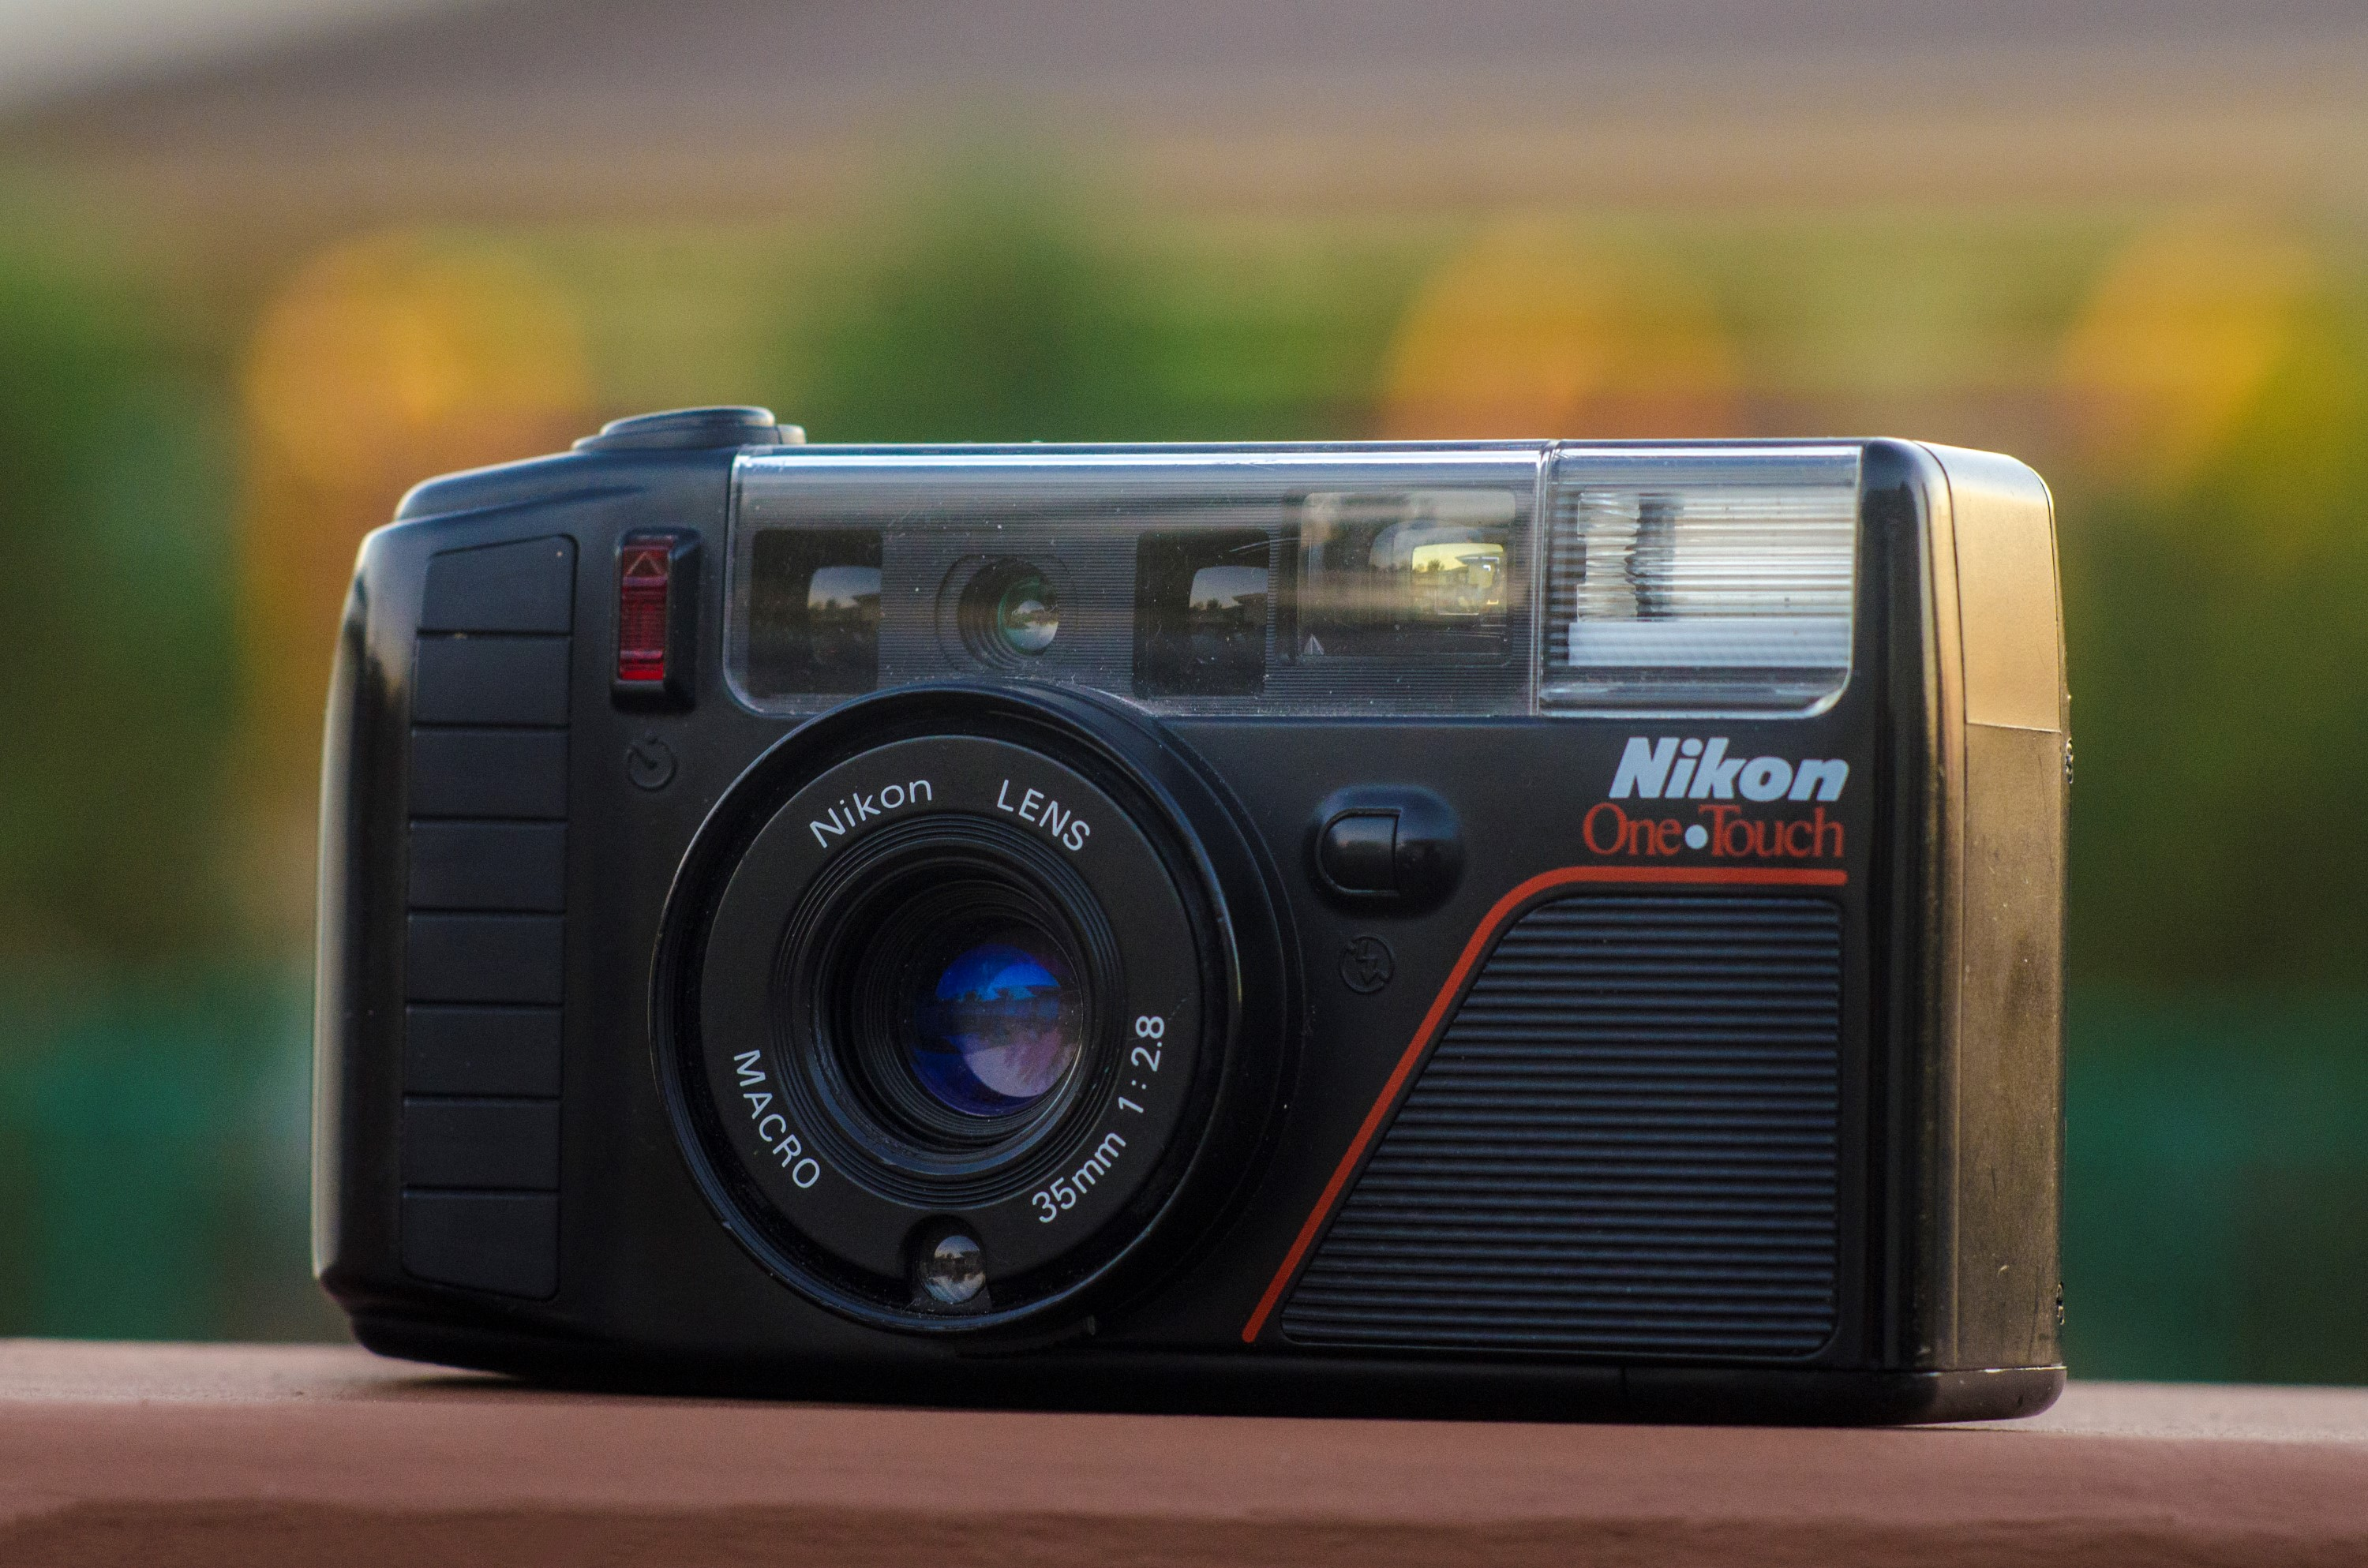 Nikon One Touch AF3 (1987)